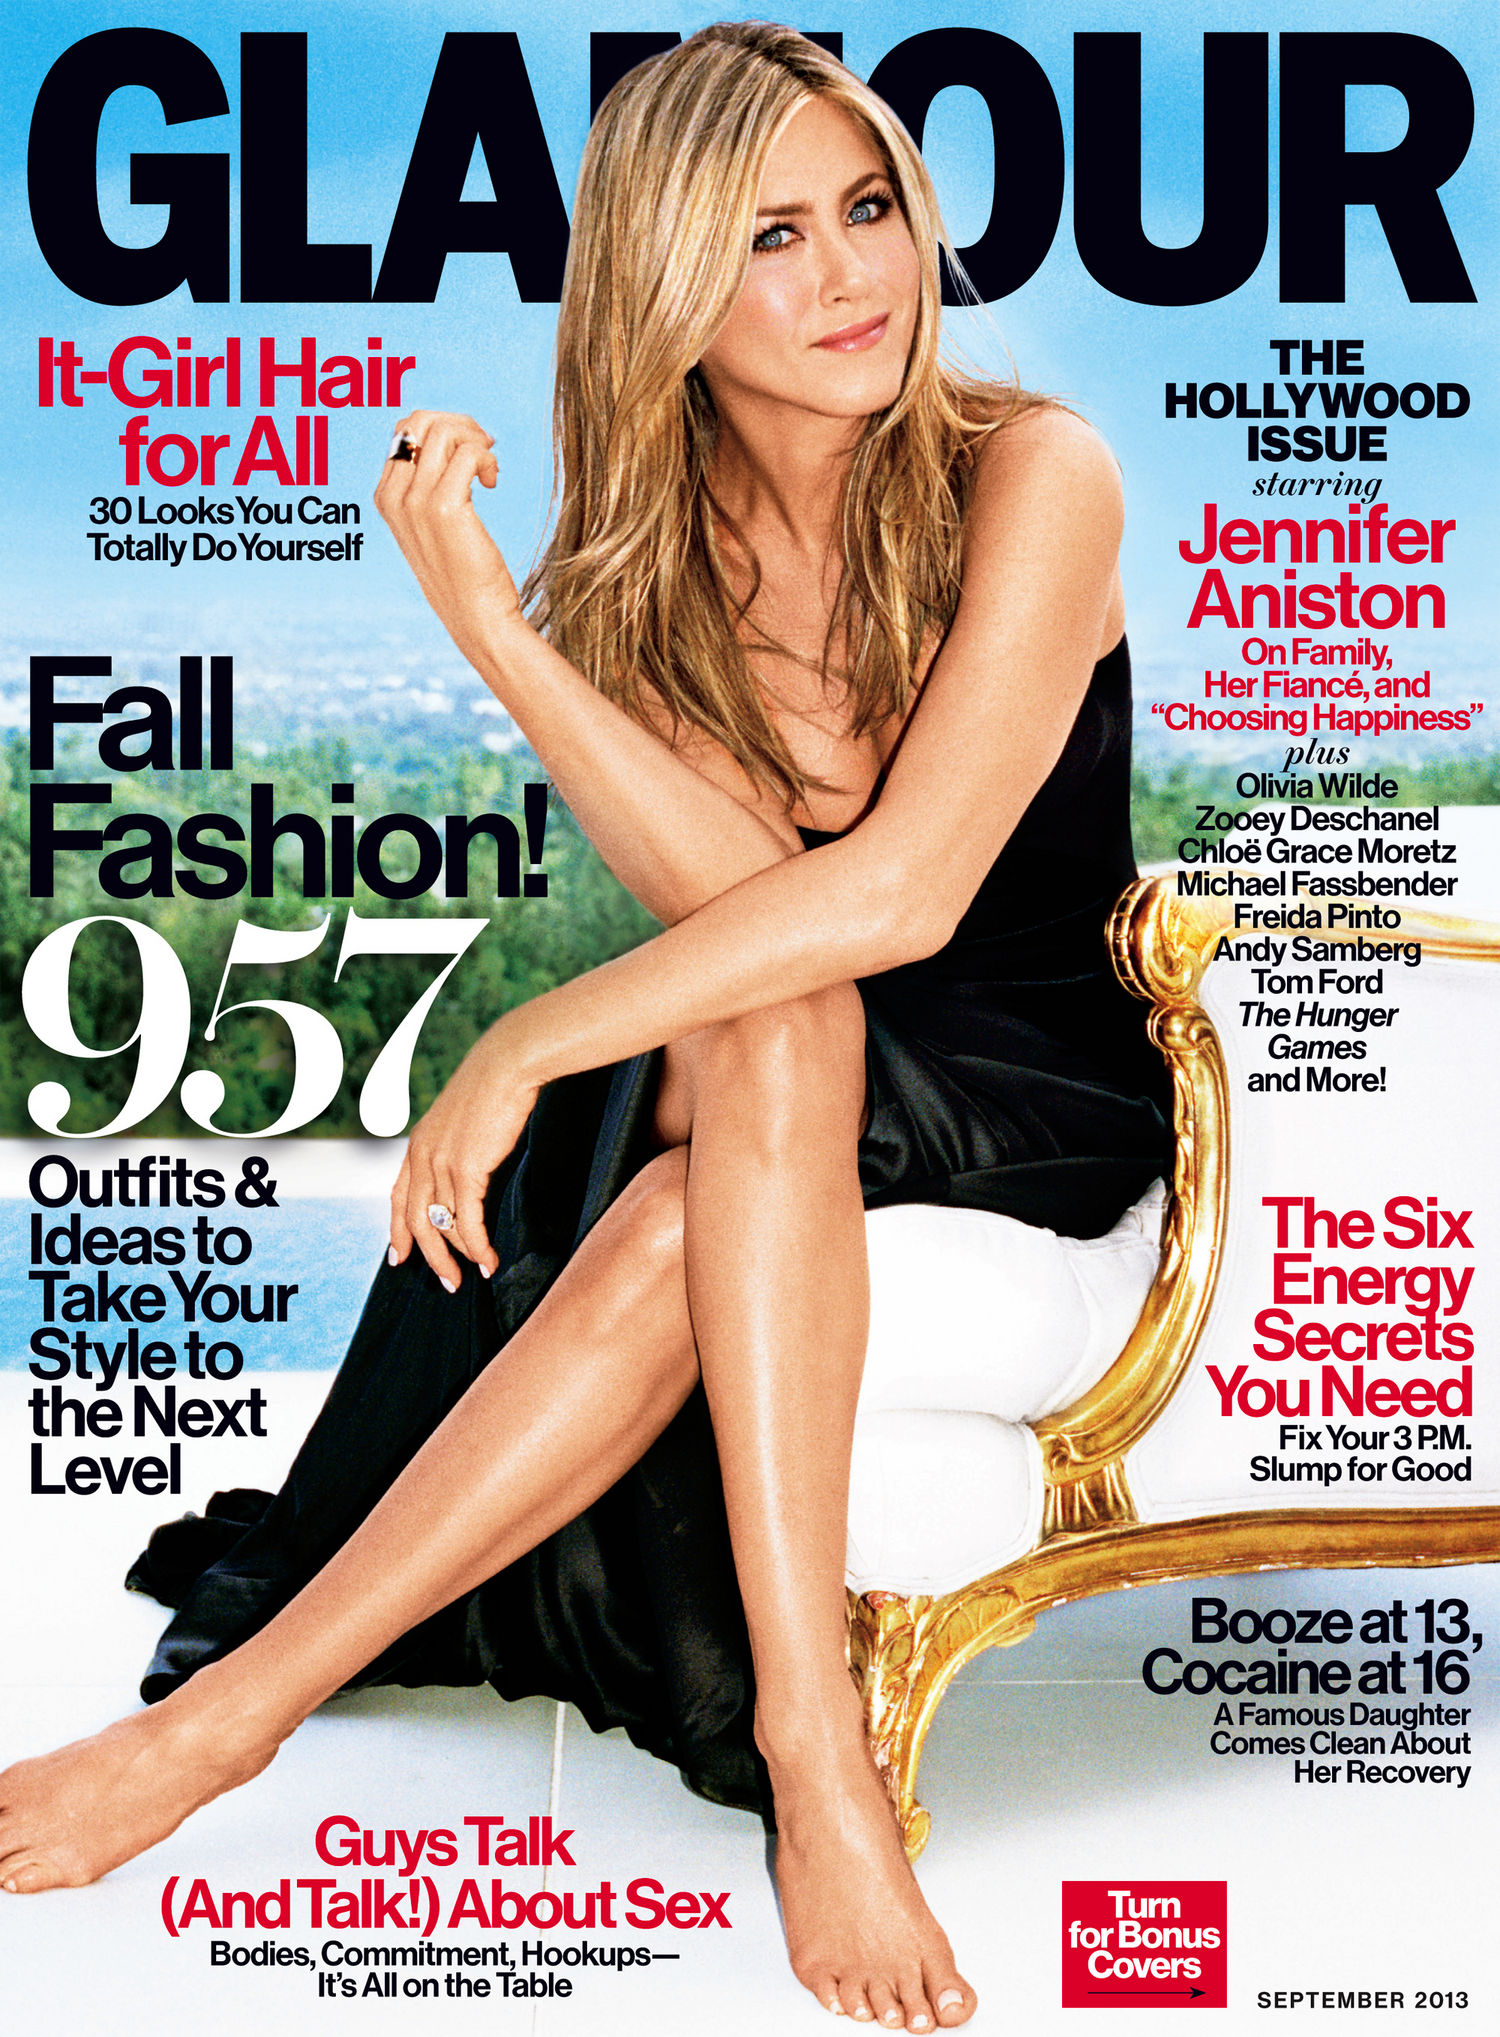 Beautiful American Actress Jennifer Aniston Modeling For The Cover Of Glamour Magazine Modeling As One Of The Highest Paid Actresses In The World (The World's Highest Paid Actresses And Top Earning Actresses In Hollywood) With Acting Earnings Of $31 Million Dollars For The Year.